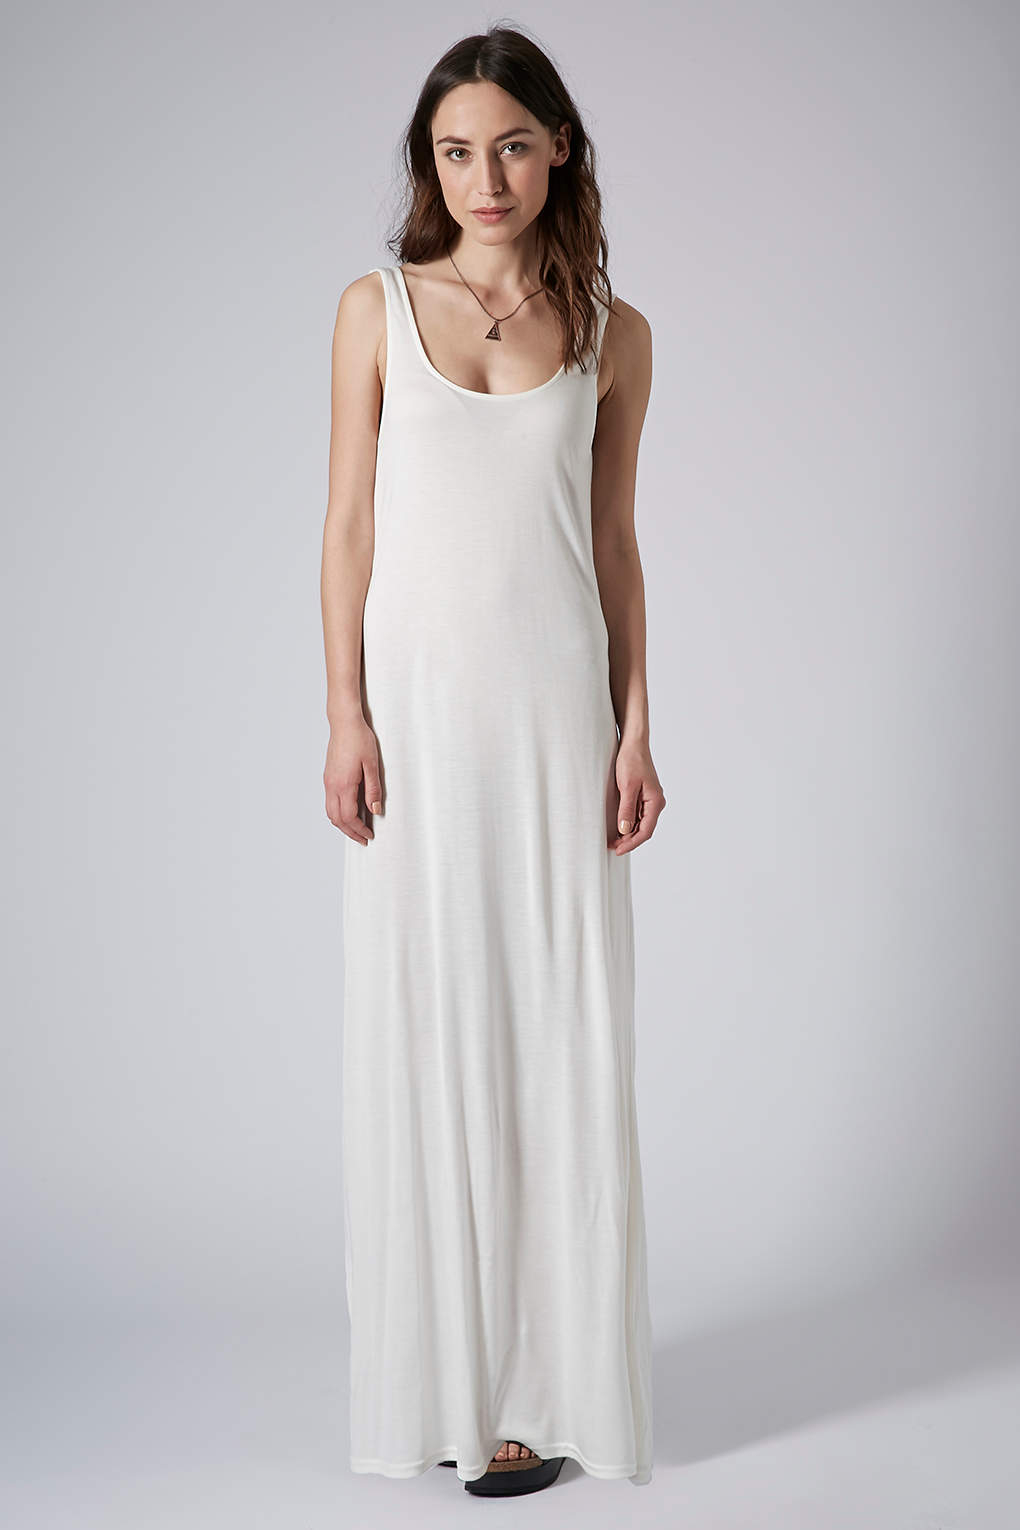 Shop affordable, unique plain white dress designed by top fashion designers worldwide. Discover more latest collections of Dresses at disborunmaba.ga